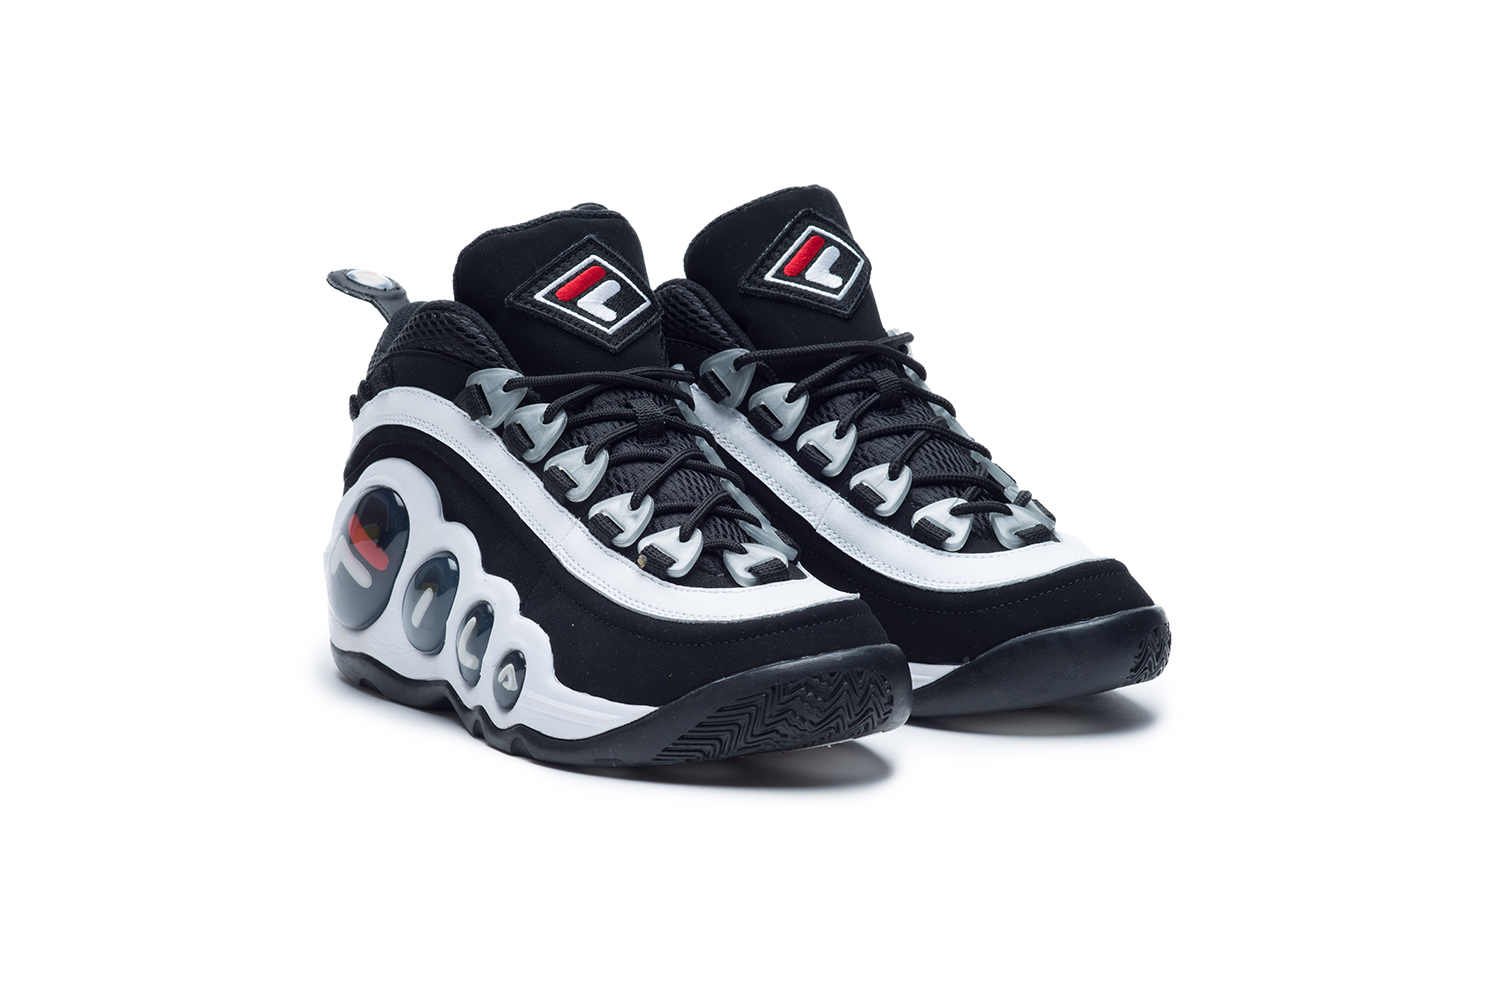 Fila Bubbles TrailBlazer - TRENDS periodical